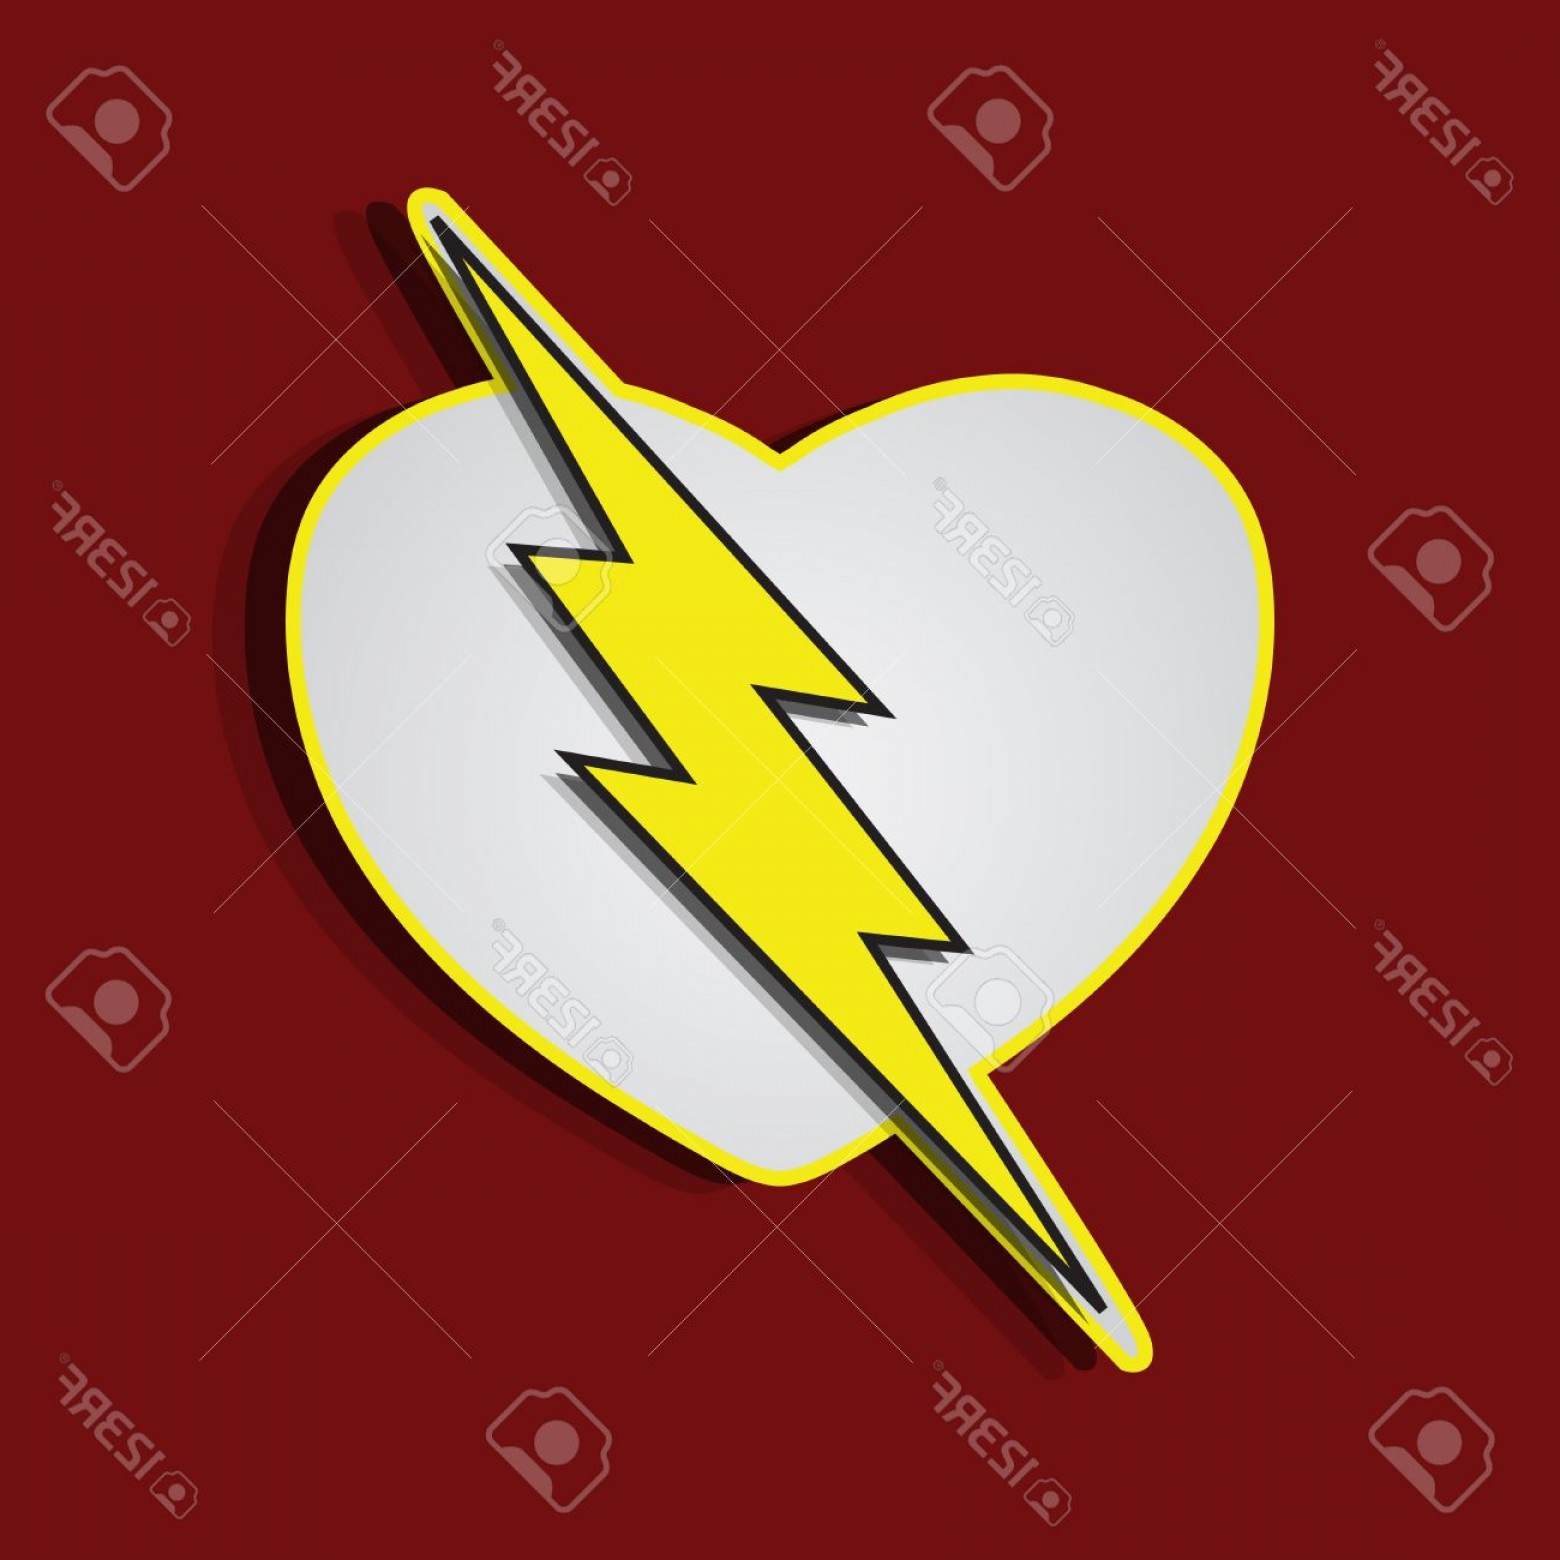 Flash Superhero Logo Vector: Photosuperhero Shields Shaped Like A Hearts Symbol For Strong Love Eps Vector